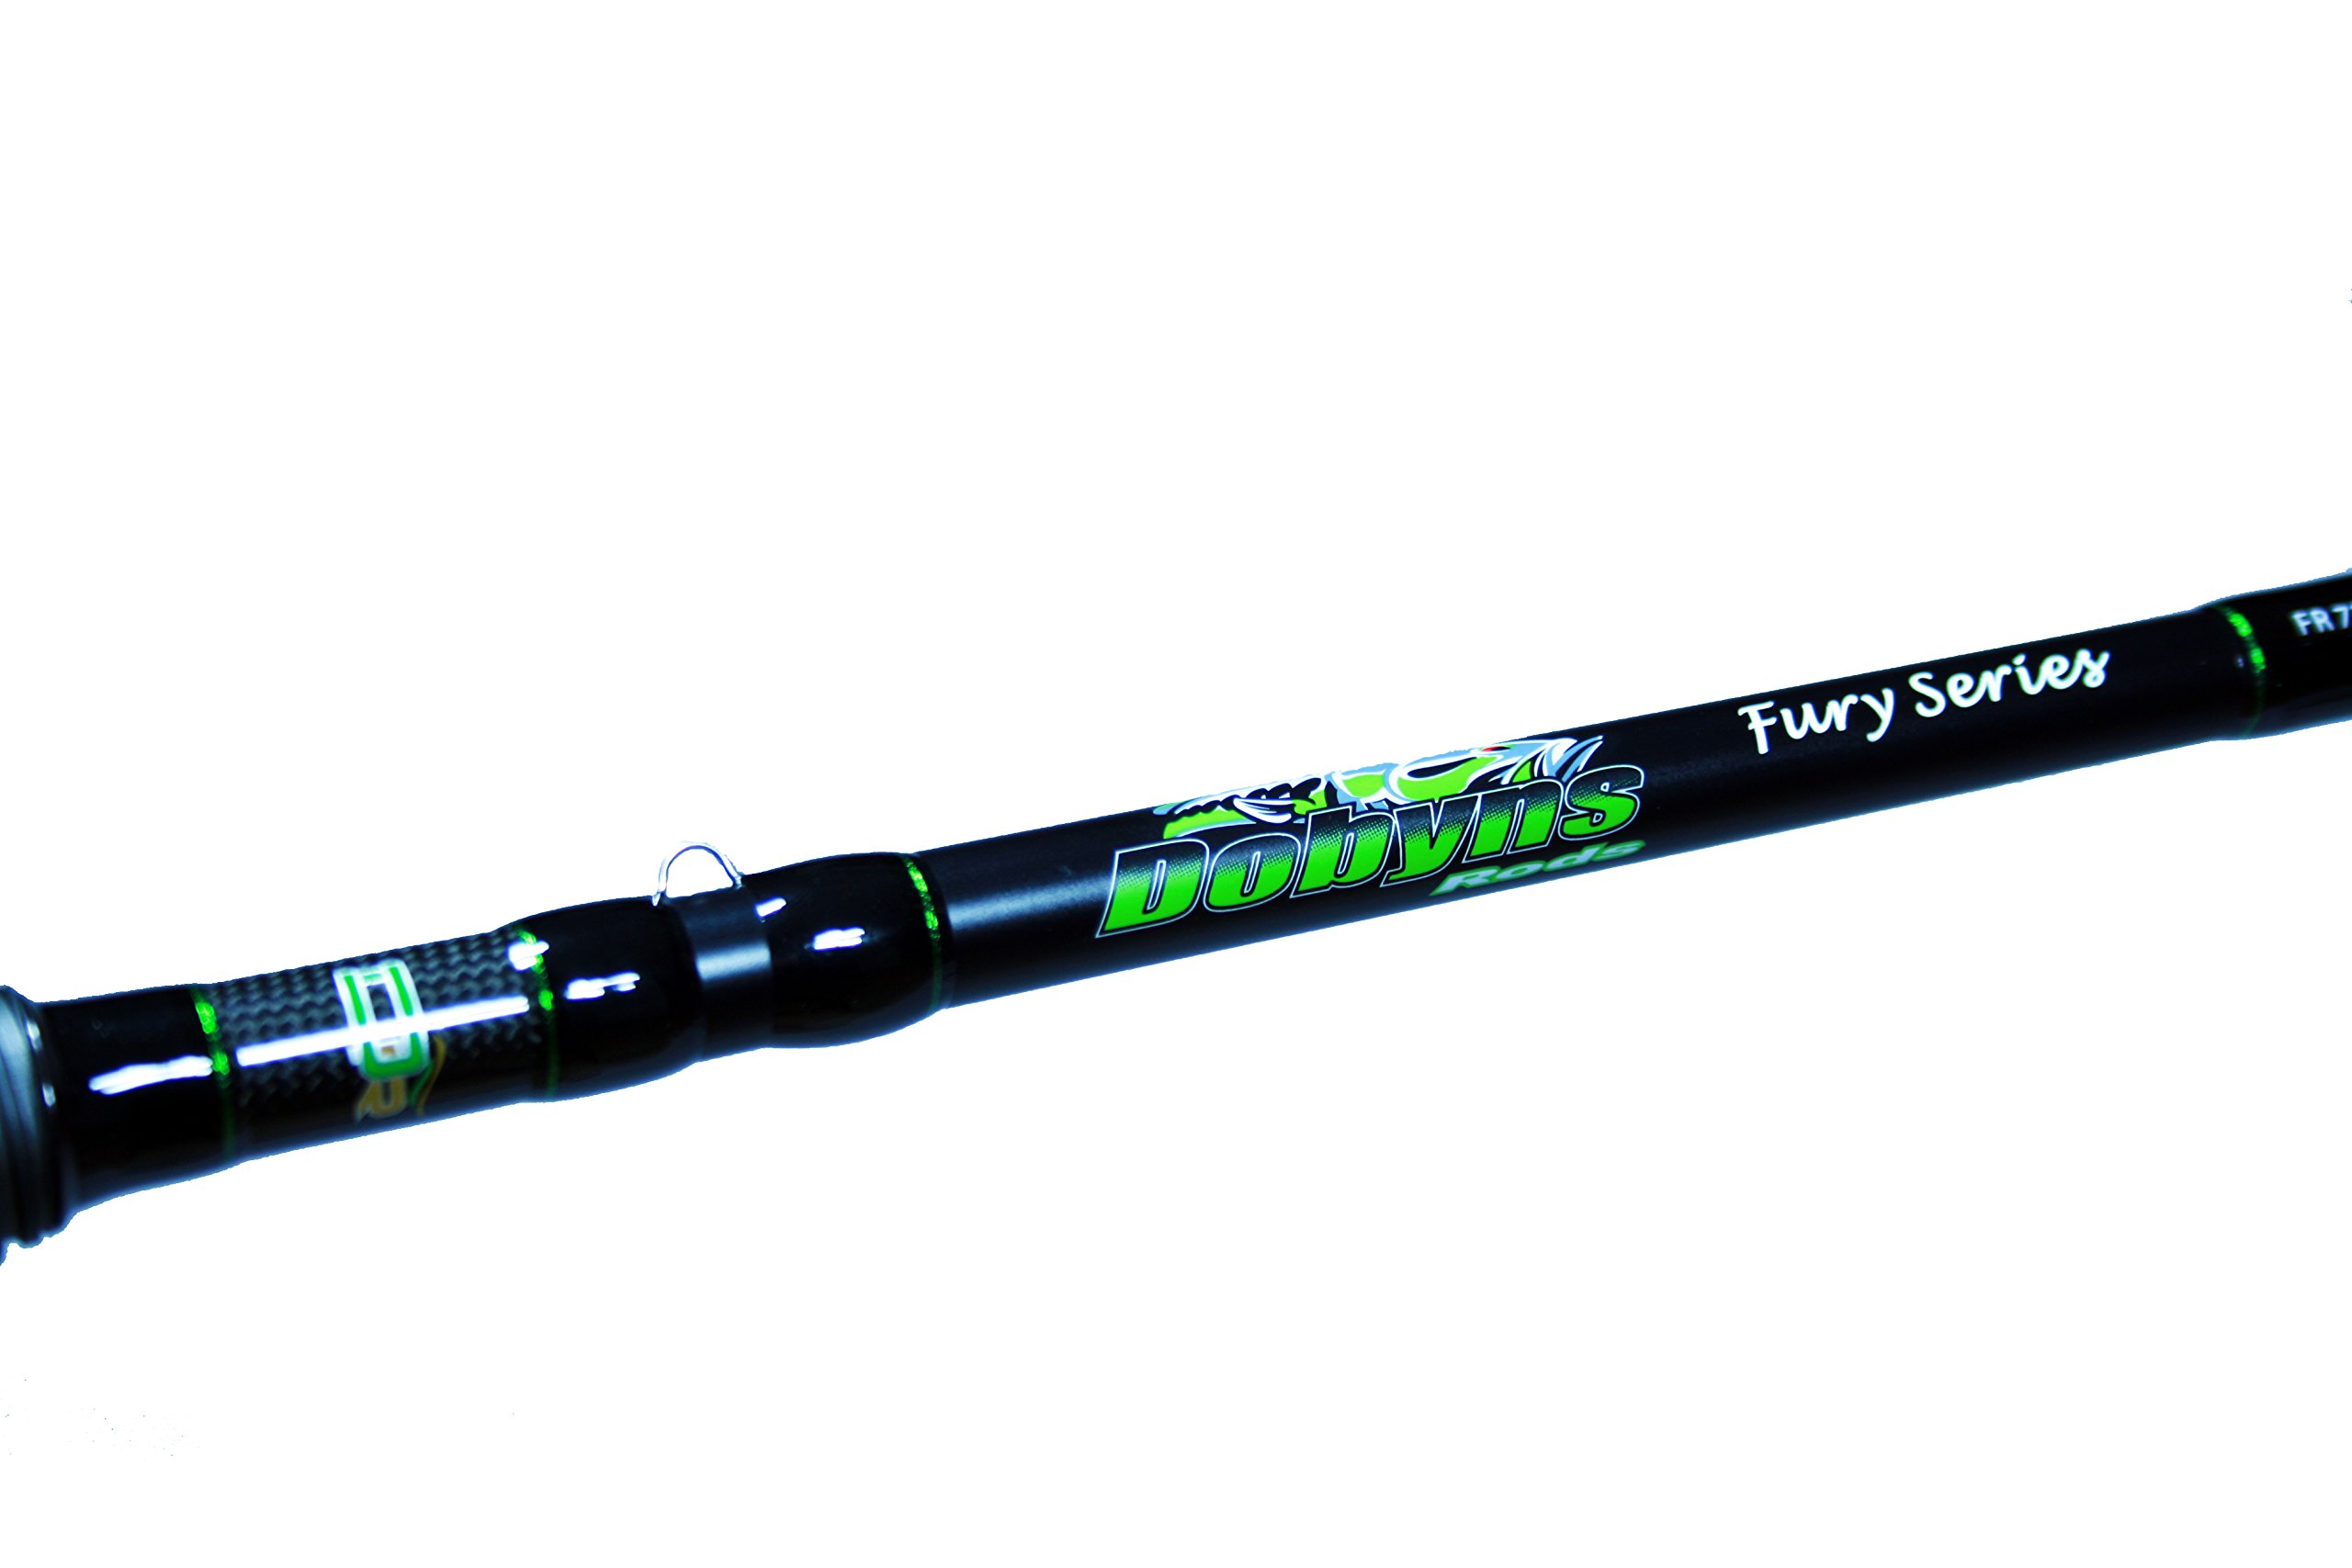 Dobyns Rods Fury Series FR 705CB Medium/Heavy Power Mod-Fast Action Crankbait Rod, 7'0'', Black/Green by Dobyns Rods (Image #2)